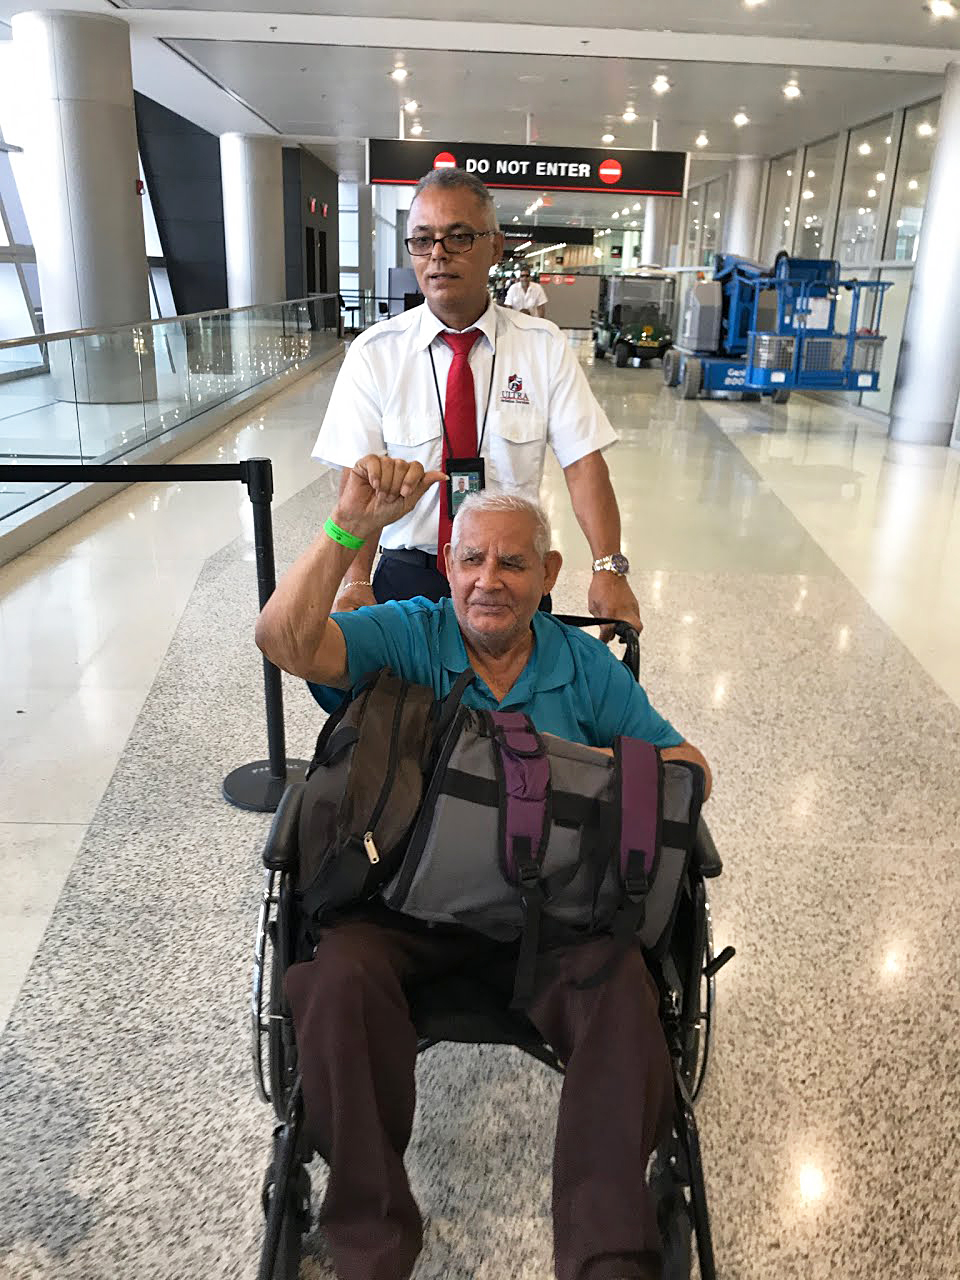 Image: Dialysis patient evacuated from Puerto Rico